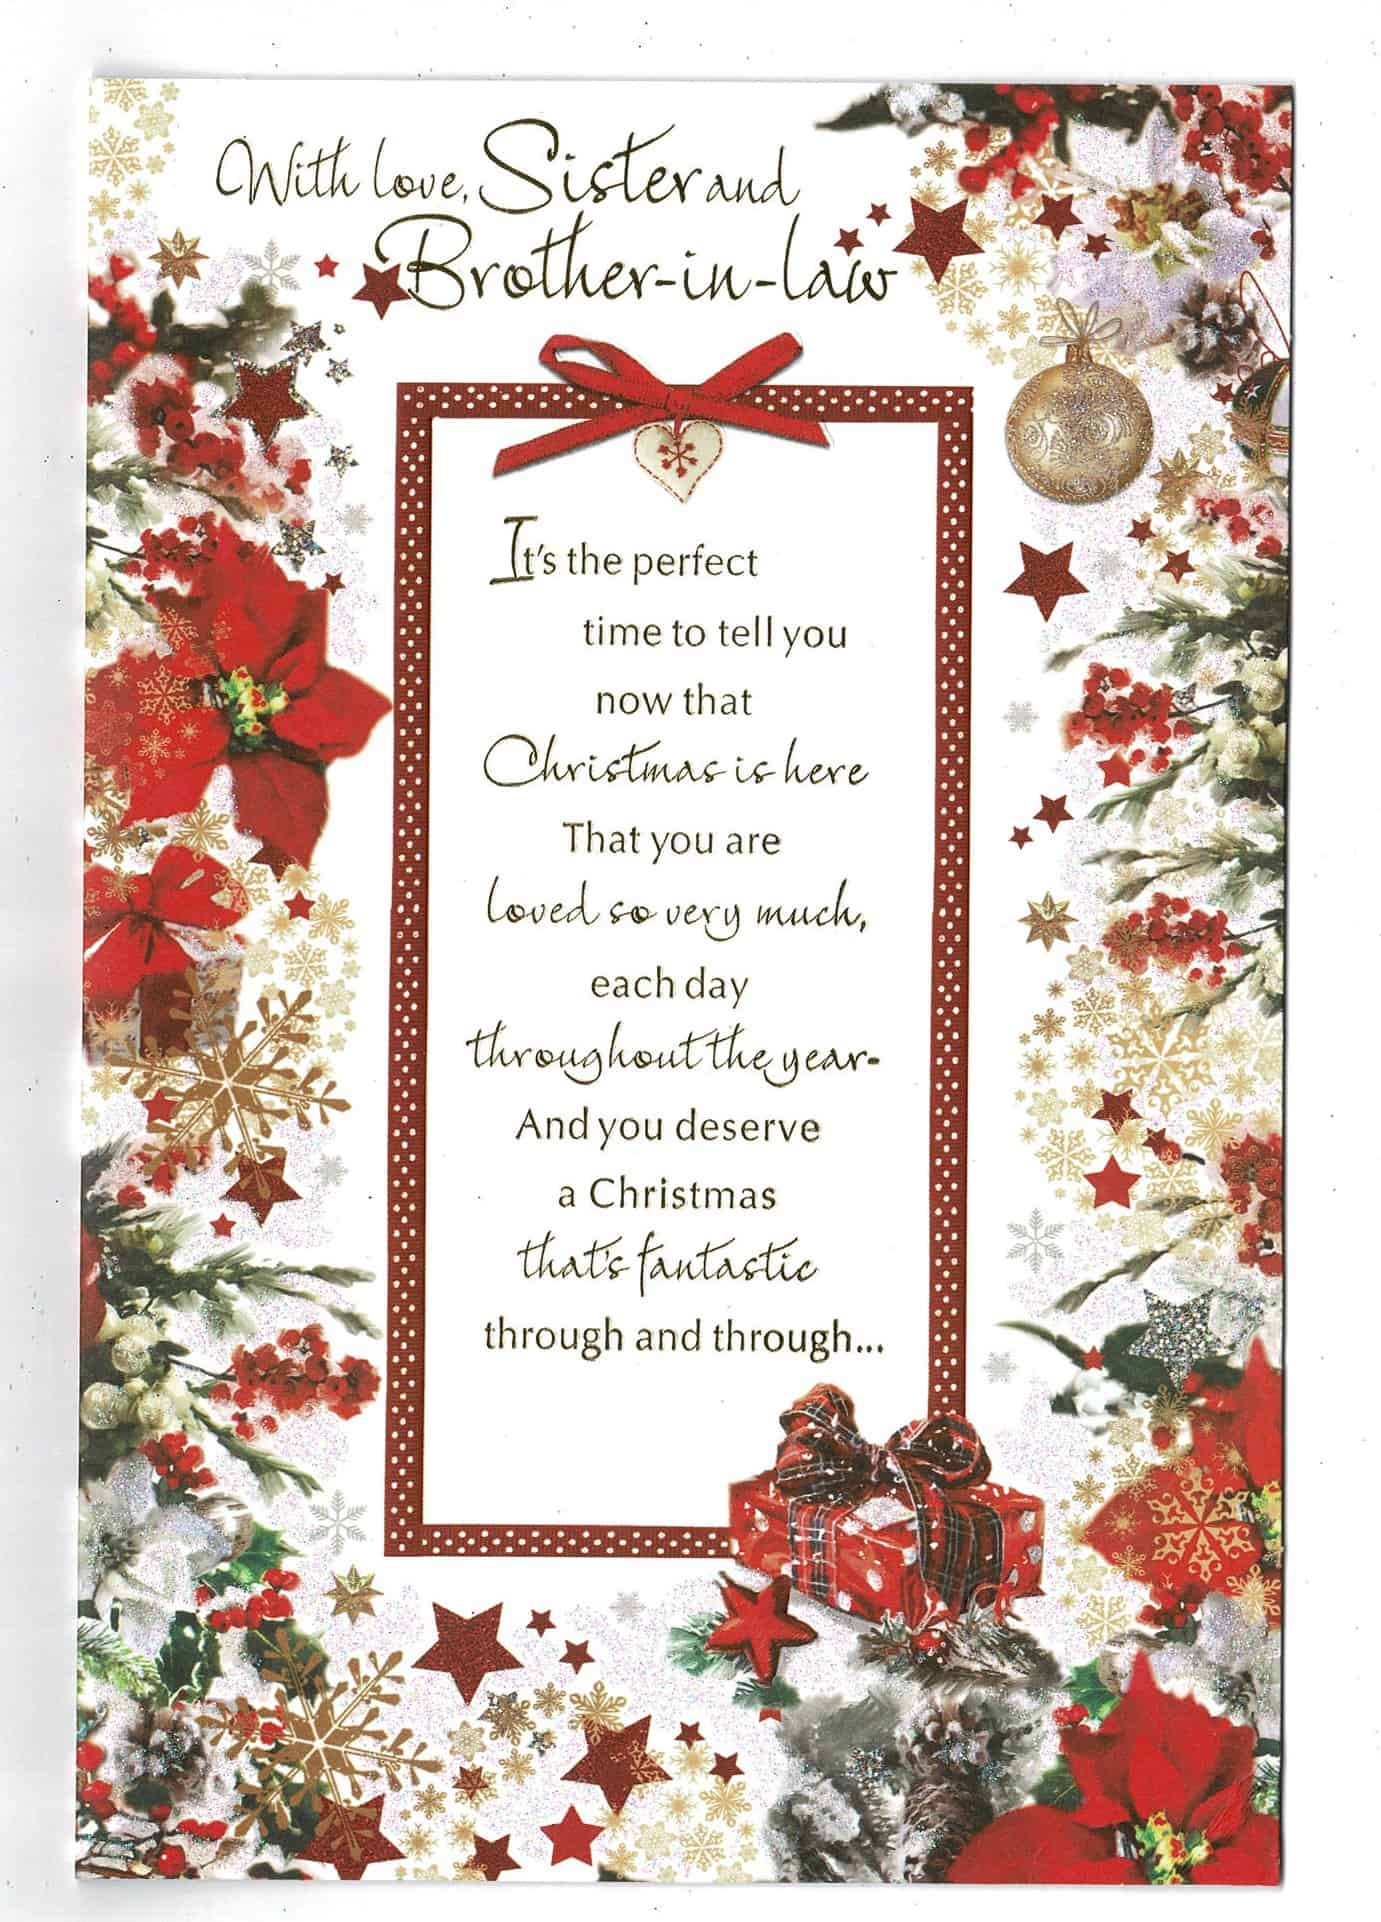 Sister And Brother In Law Christmas Card With Sentiment ...